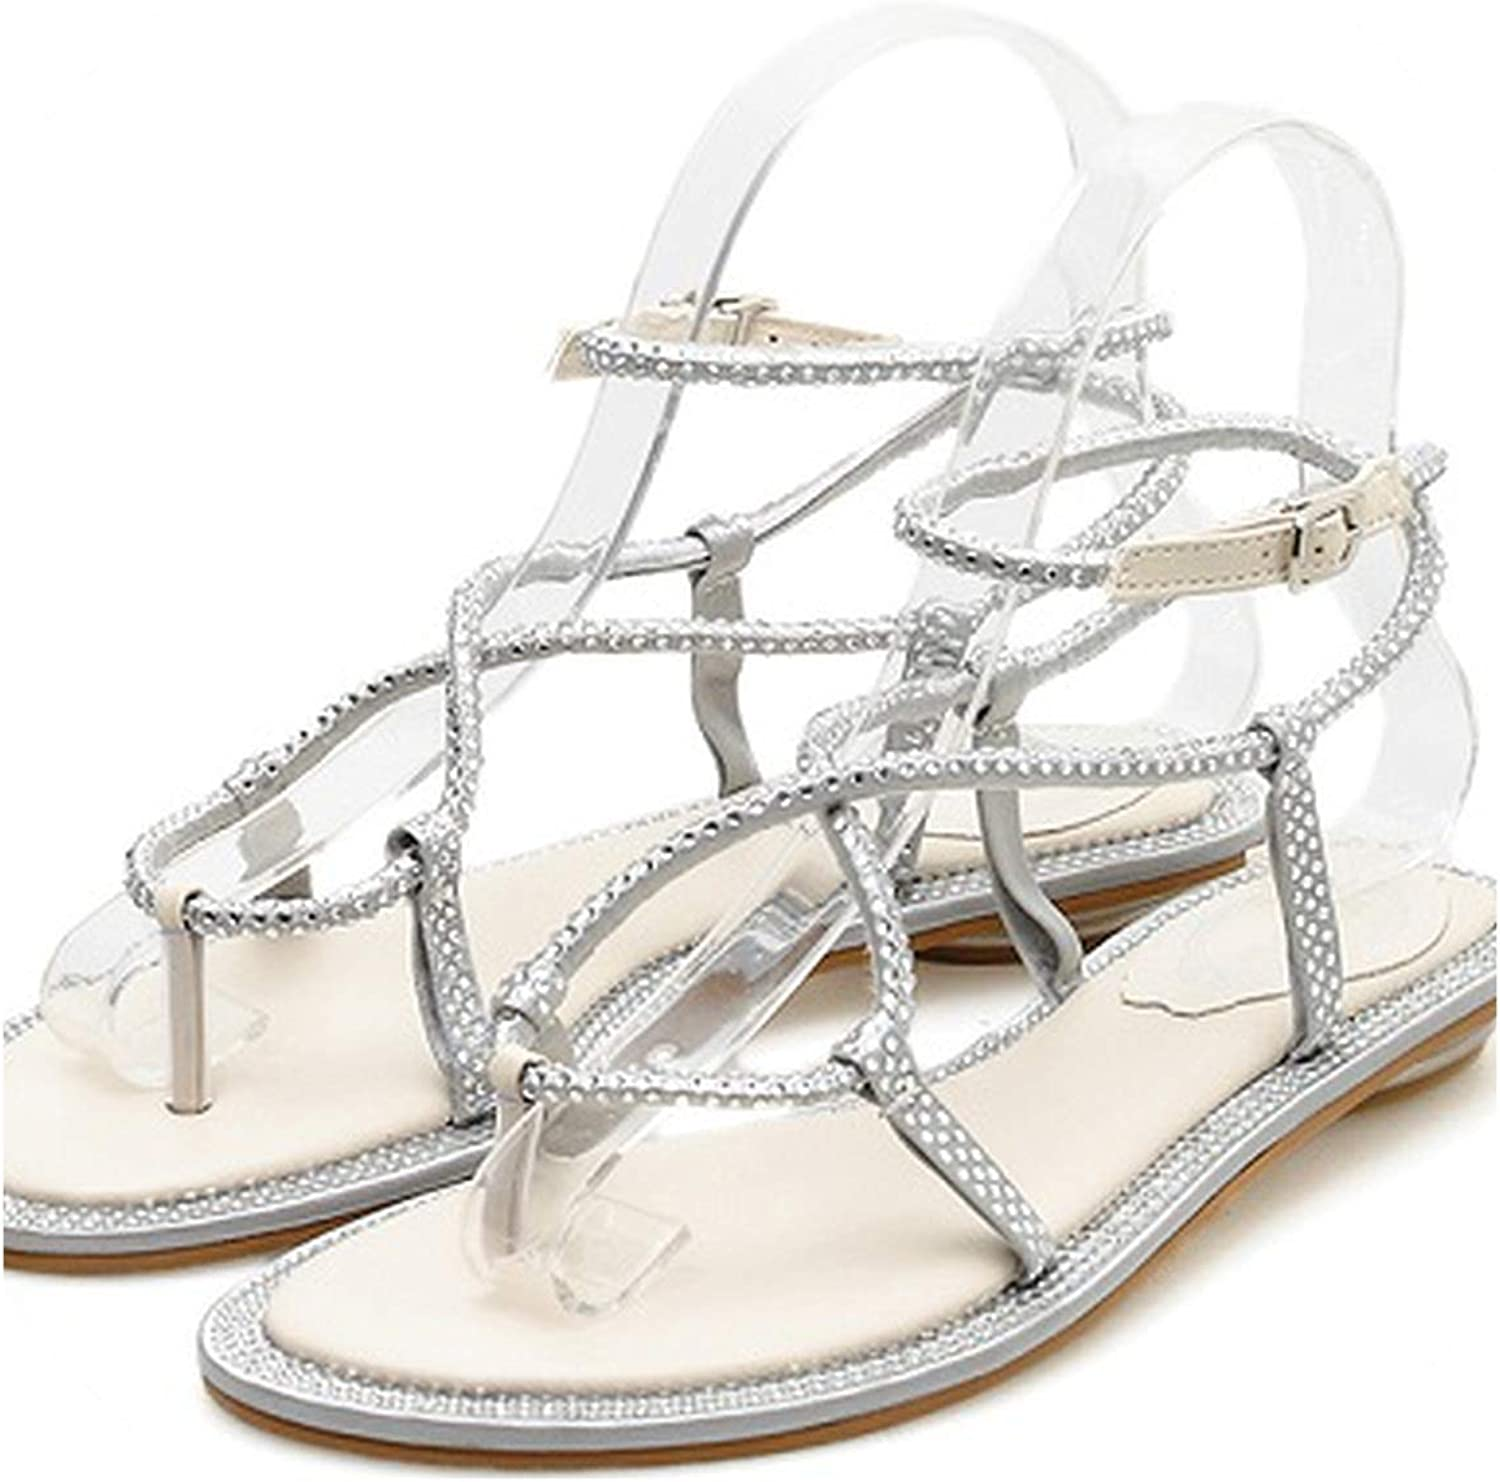 RAINIE002 2019 Woman Sandalswomen shoes Rhito Gladiator Flat Sandals Crystal Flip Flops Silver Size 35-39